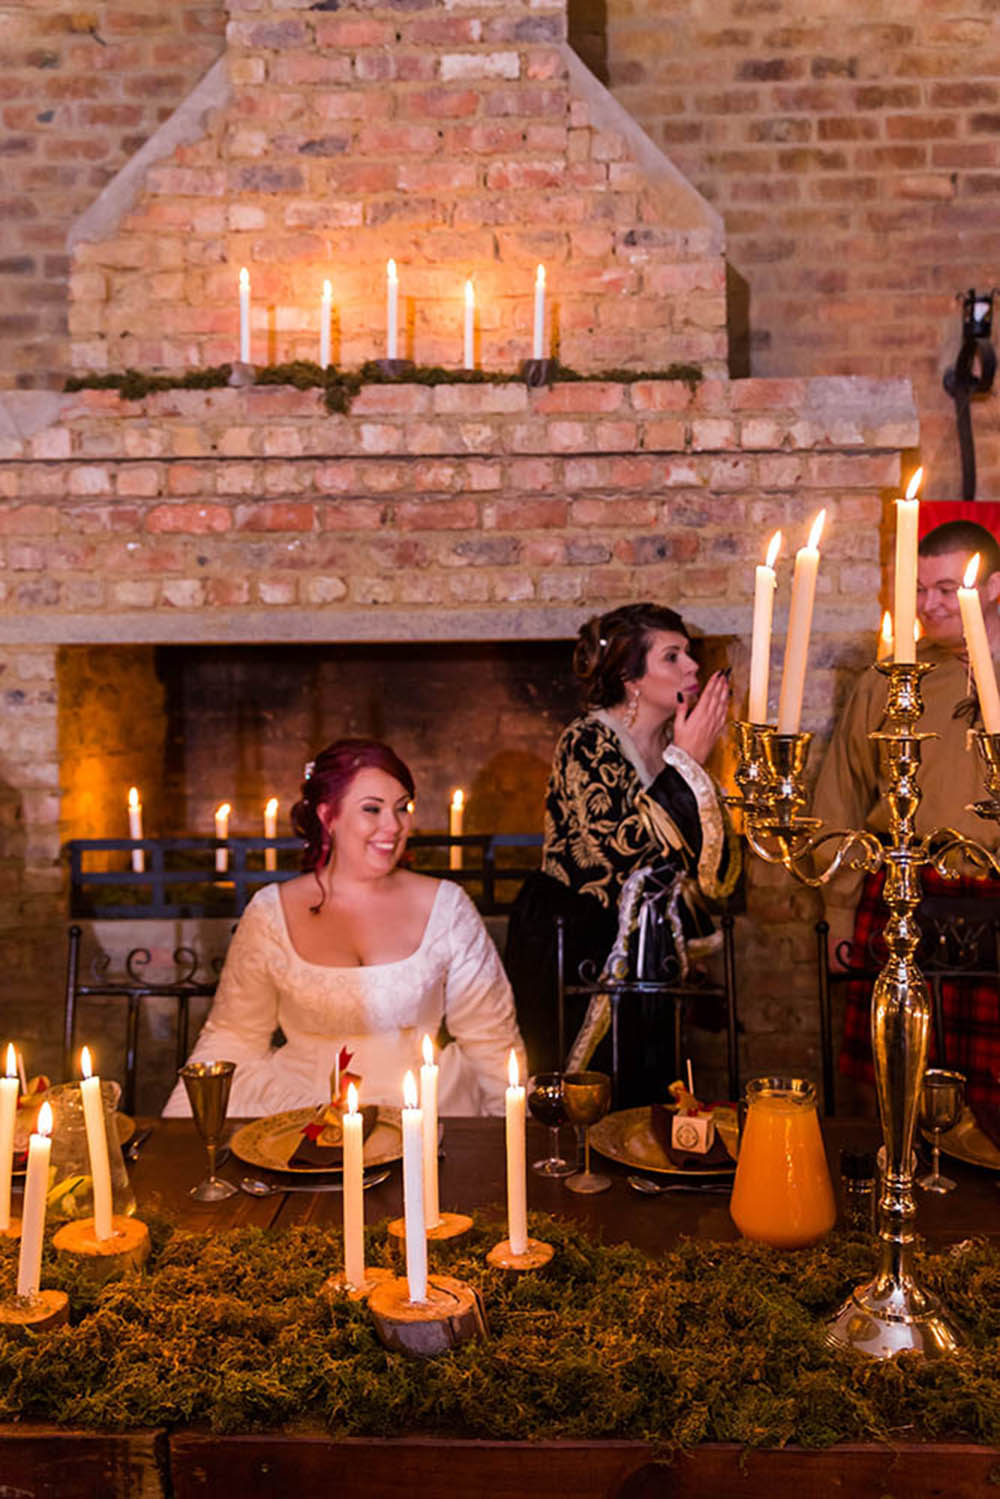 medieval-themed-wedding-medieval-wedding-dgr-photography-castle-wedding-114